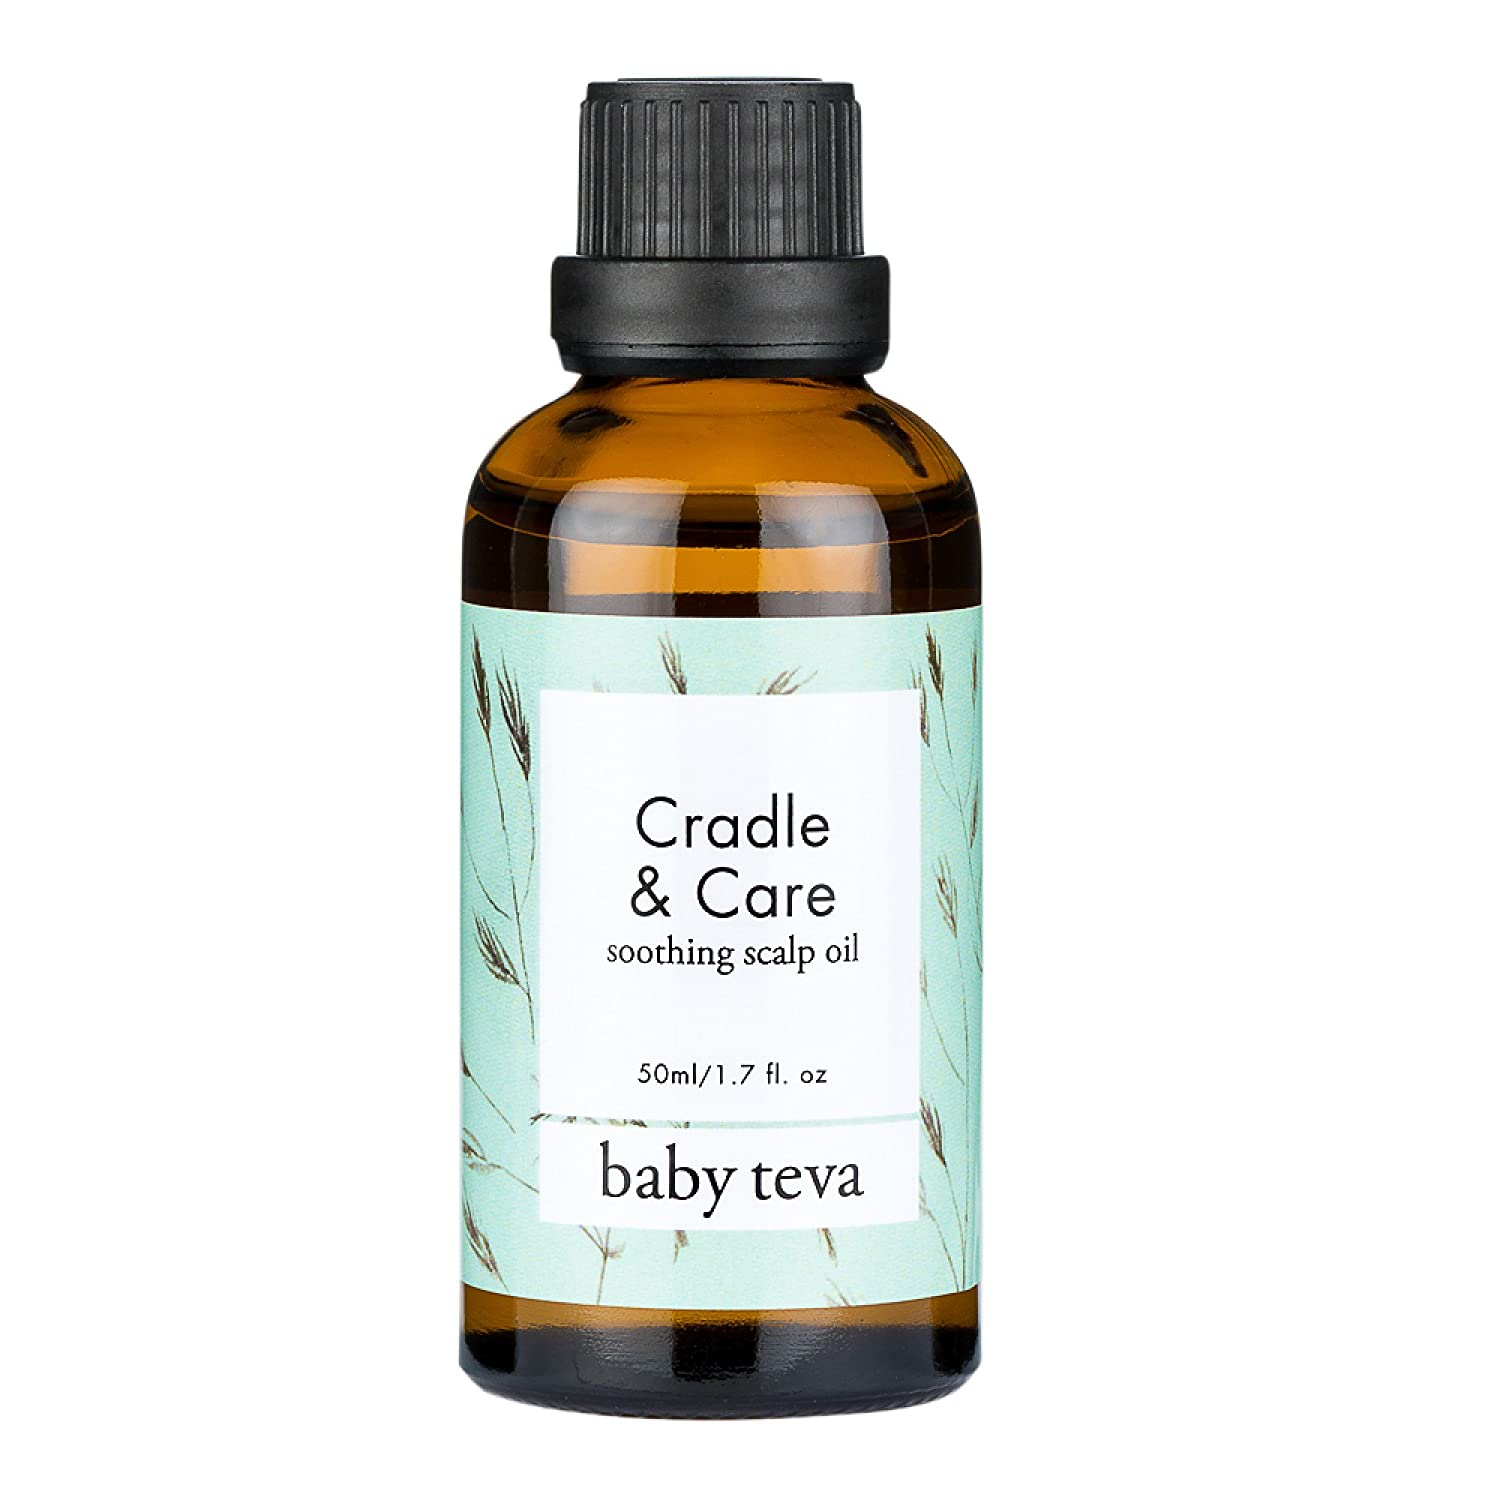 Cradle Cap Oil Treatment - Infant & Baby Remedy | Natural, Soothing, and Nourishing Dry Scalp Oil, by Baby Teva